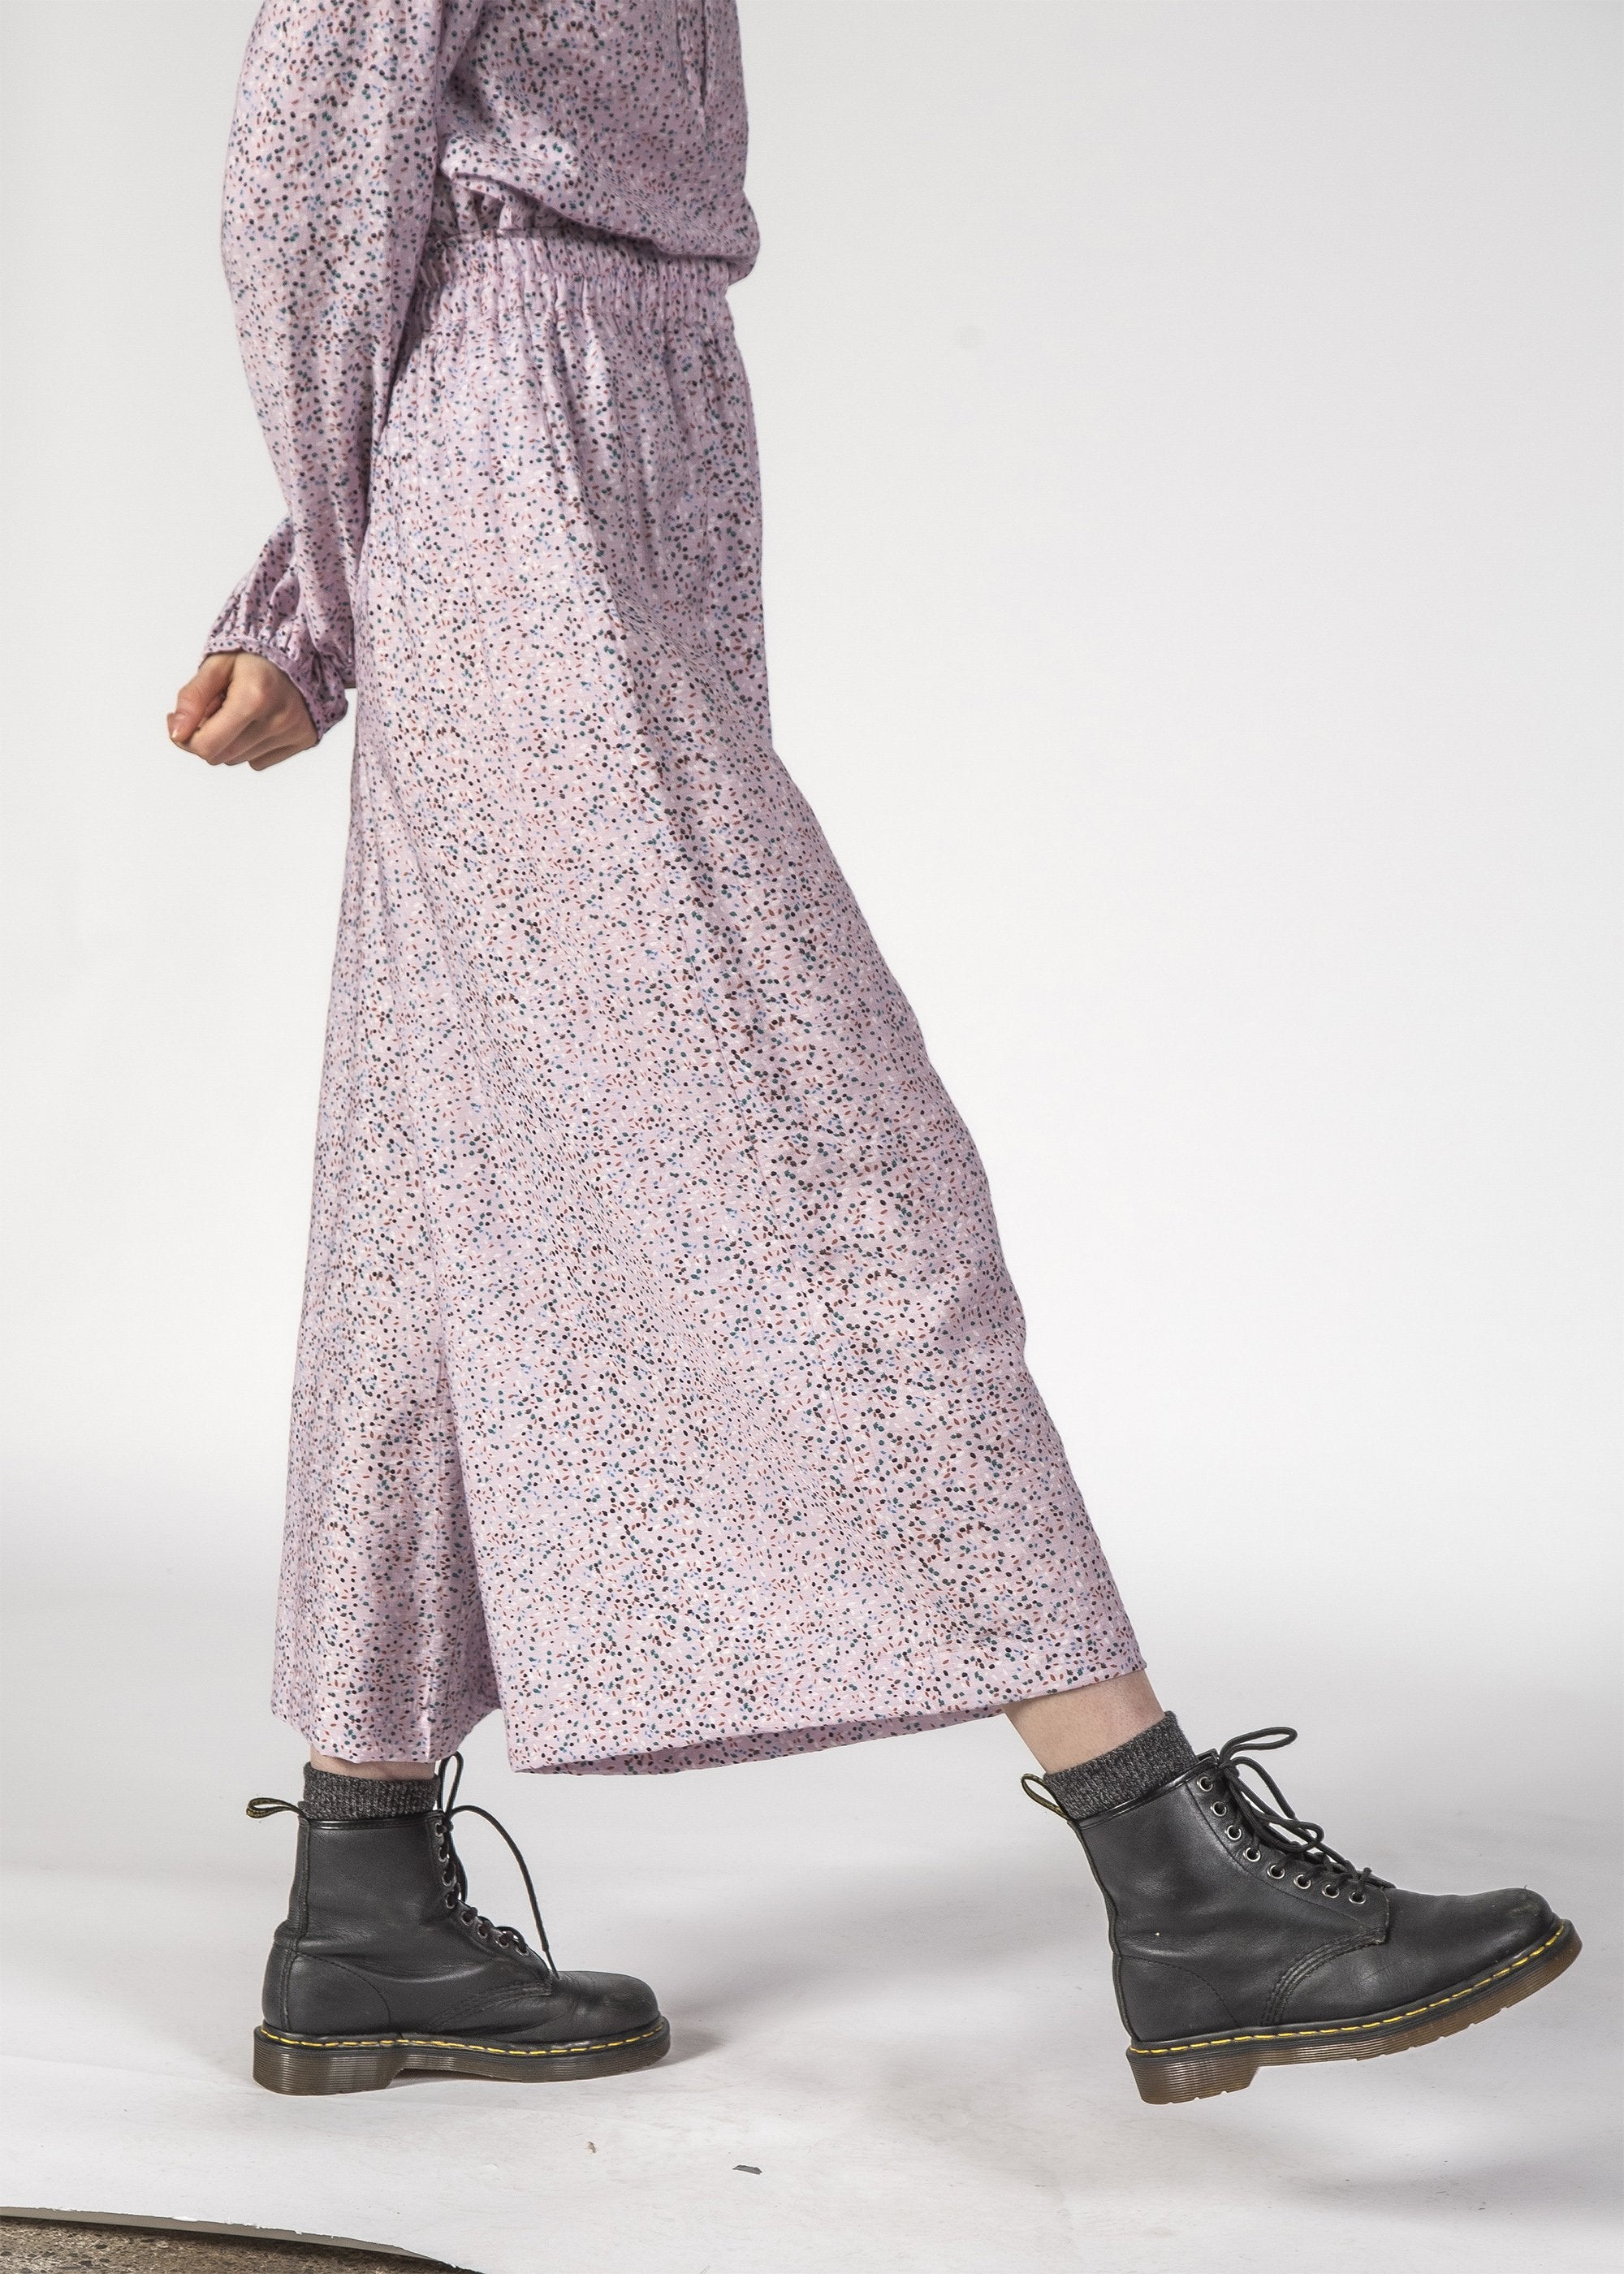 COCO PANTS - Lilac Speckle